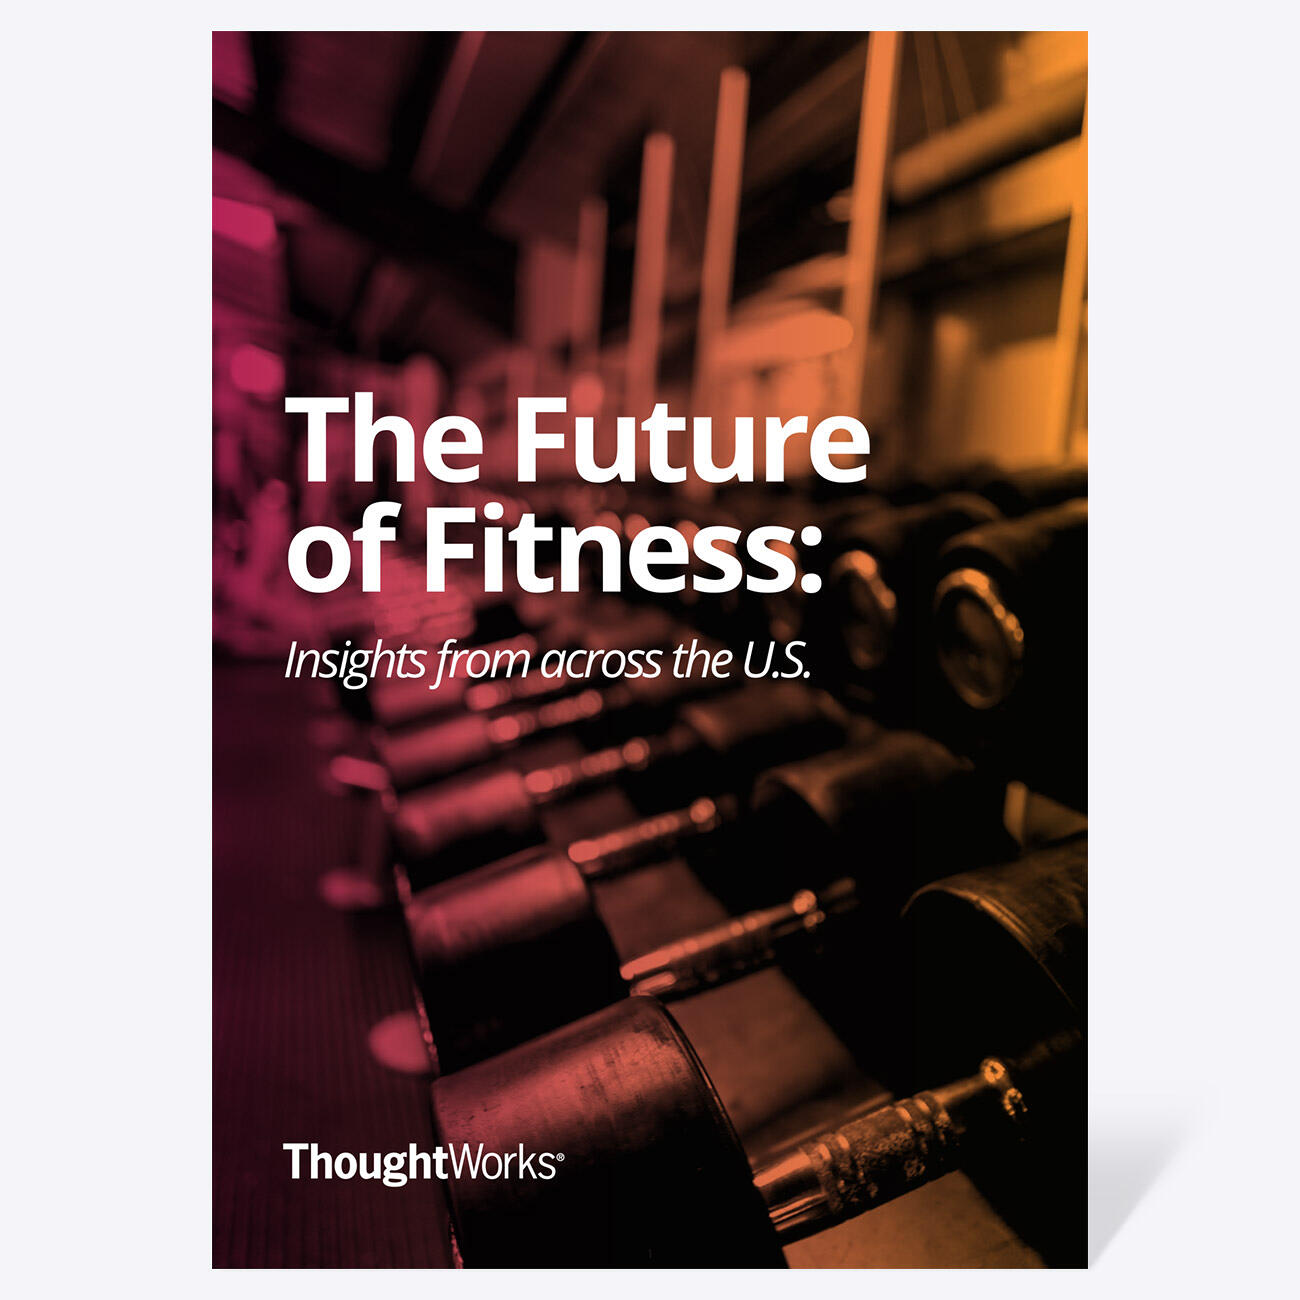 The future of fitness: insights from across the U.S.